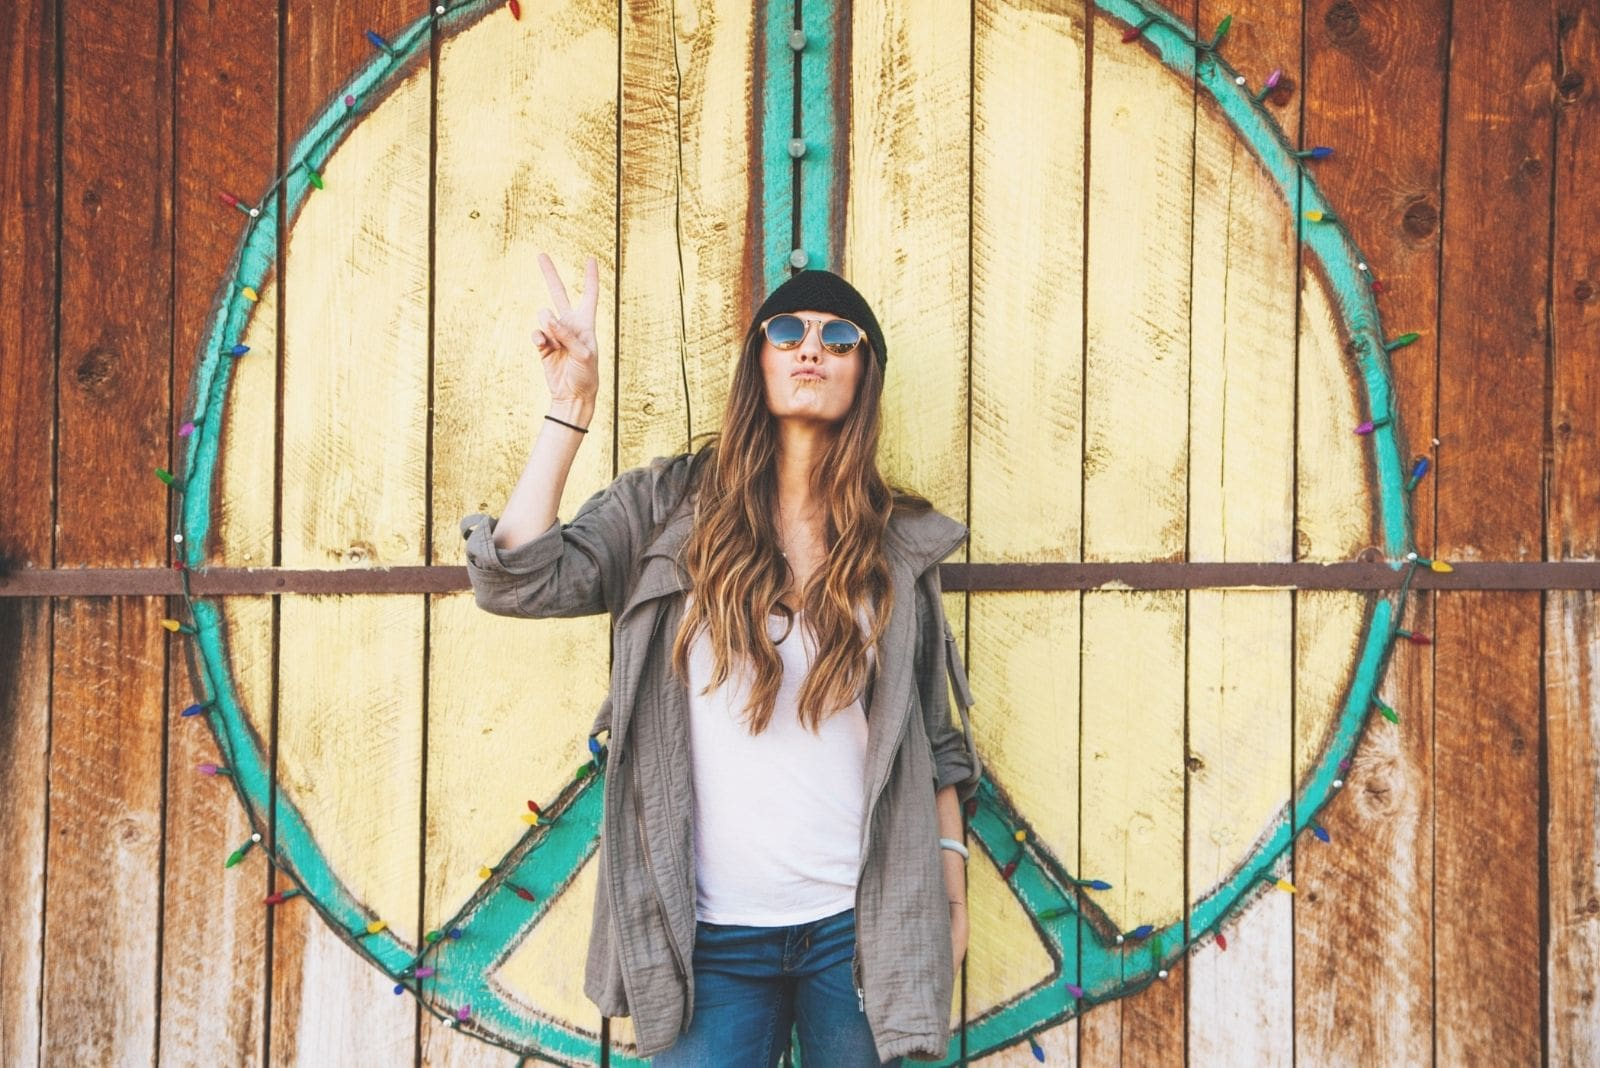 image of a hippie fashion woman standing in a barn door wearing shades